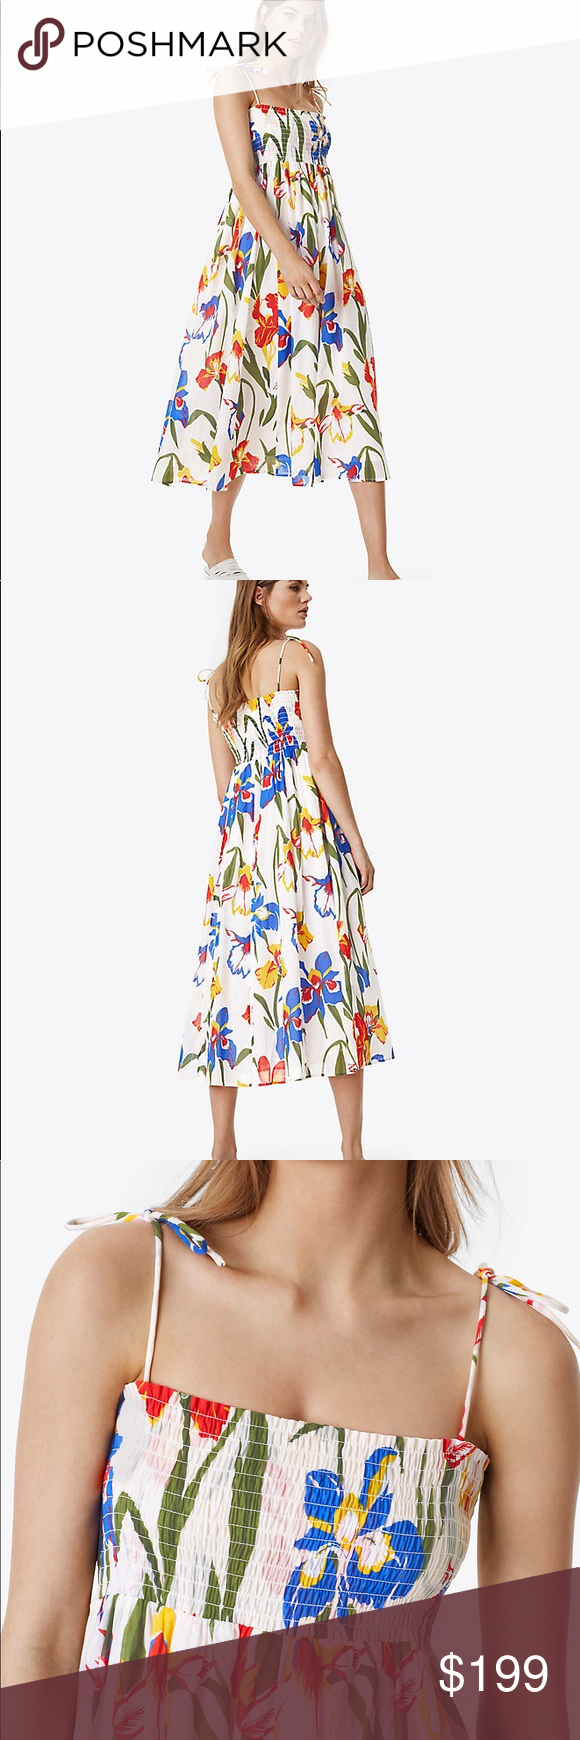 9b3c4e81f8 NWOT Tory Burch Painted Iris Dress Wear it two ways: Tory's smocked Convertible  Iris Beach Dress can go from the sand to the streets.